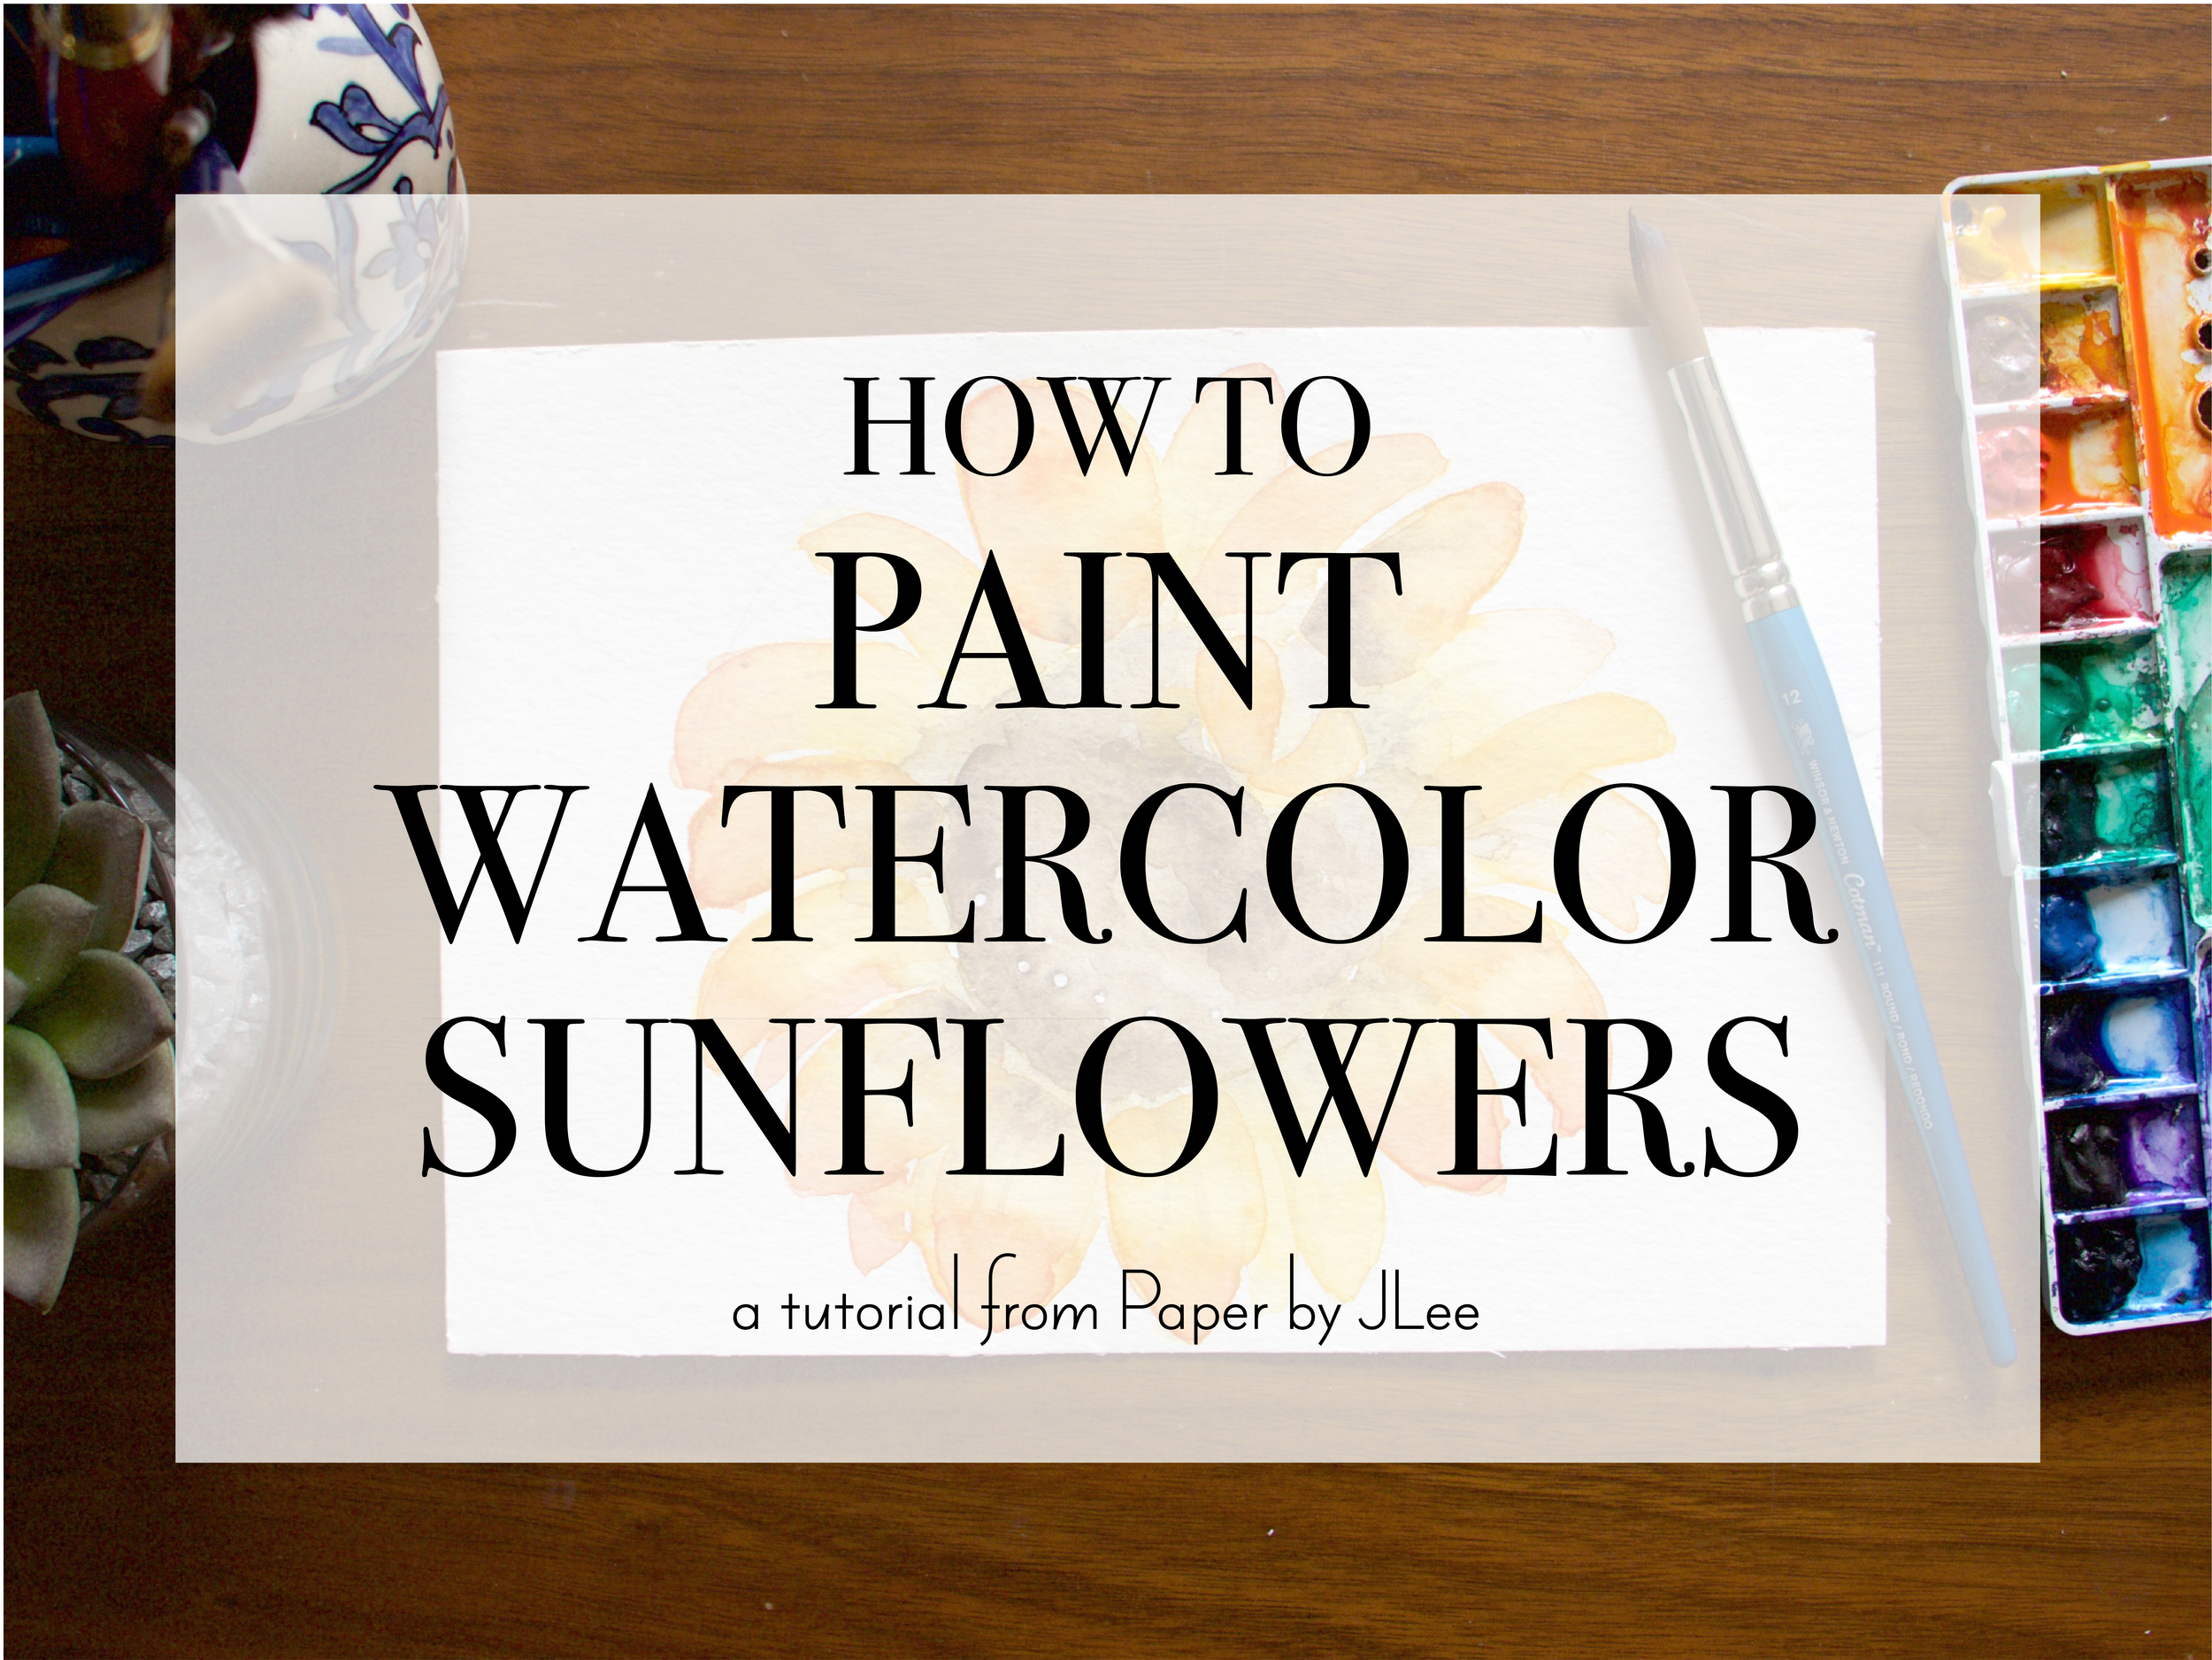 Paper by JLee: Sunflower Watercolor Tutorial